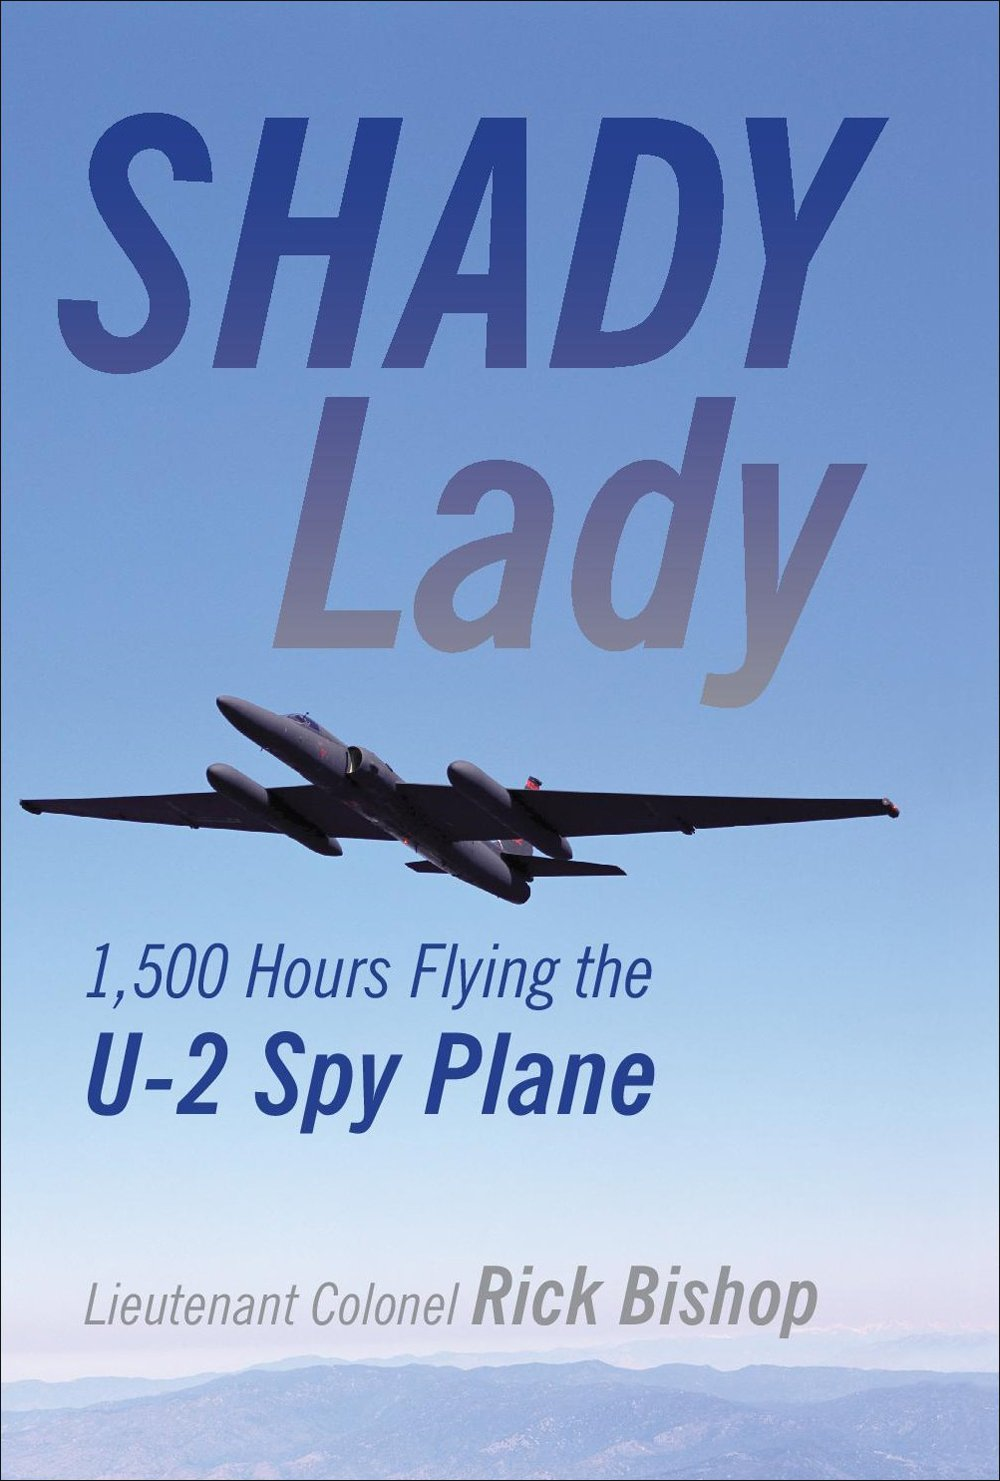 Shady Lady 1 500 Hours Flying The U 2 Spy Plane Lt Col Rick Bishop Ret 9781910809099 Amazon Books